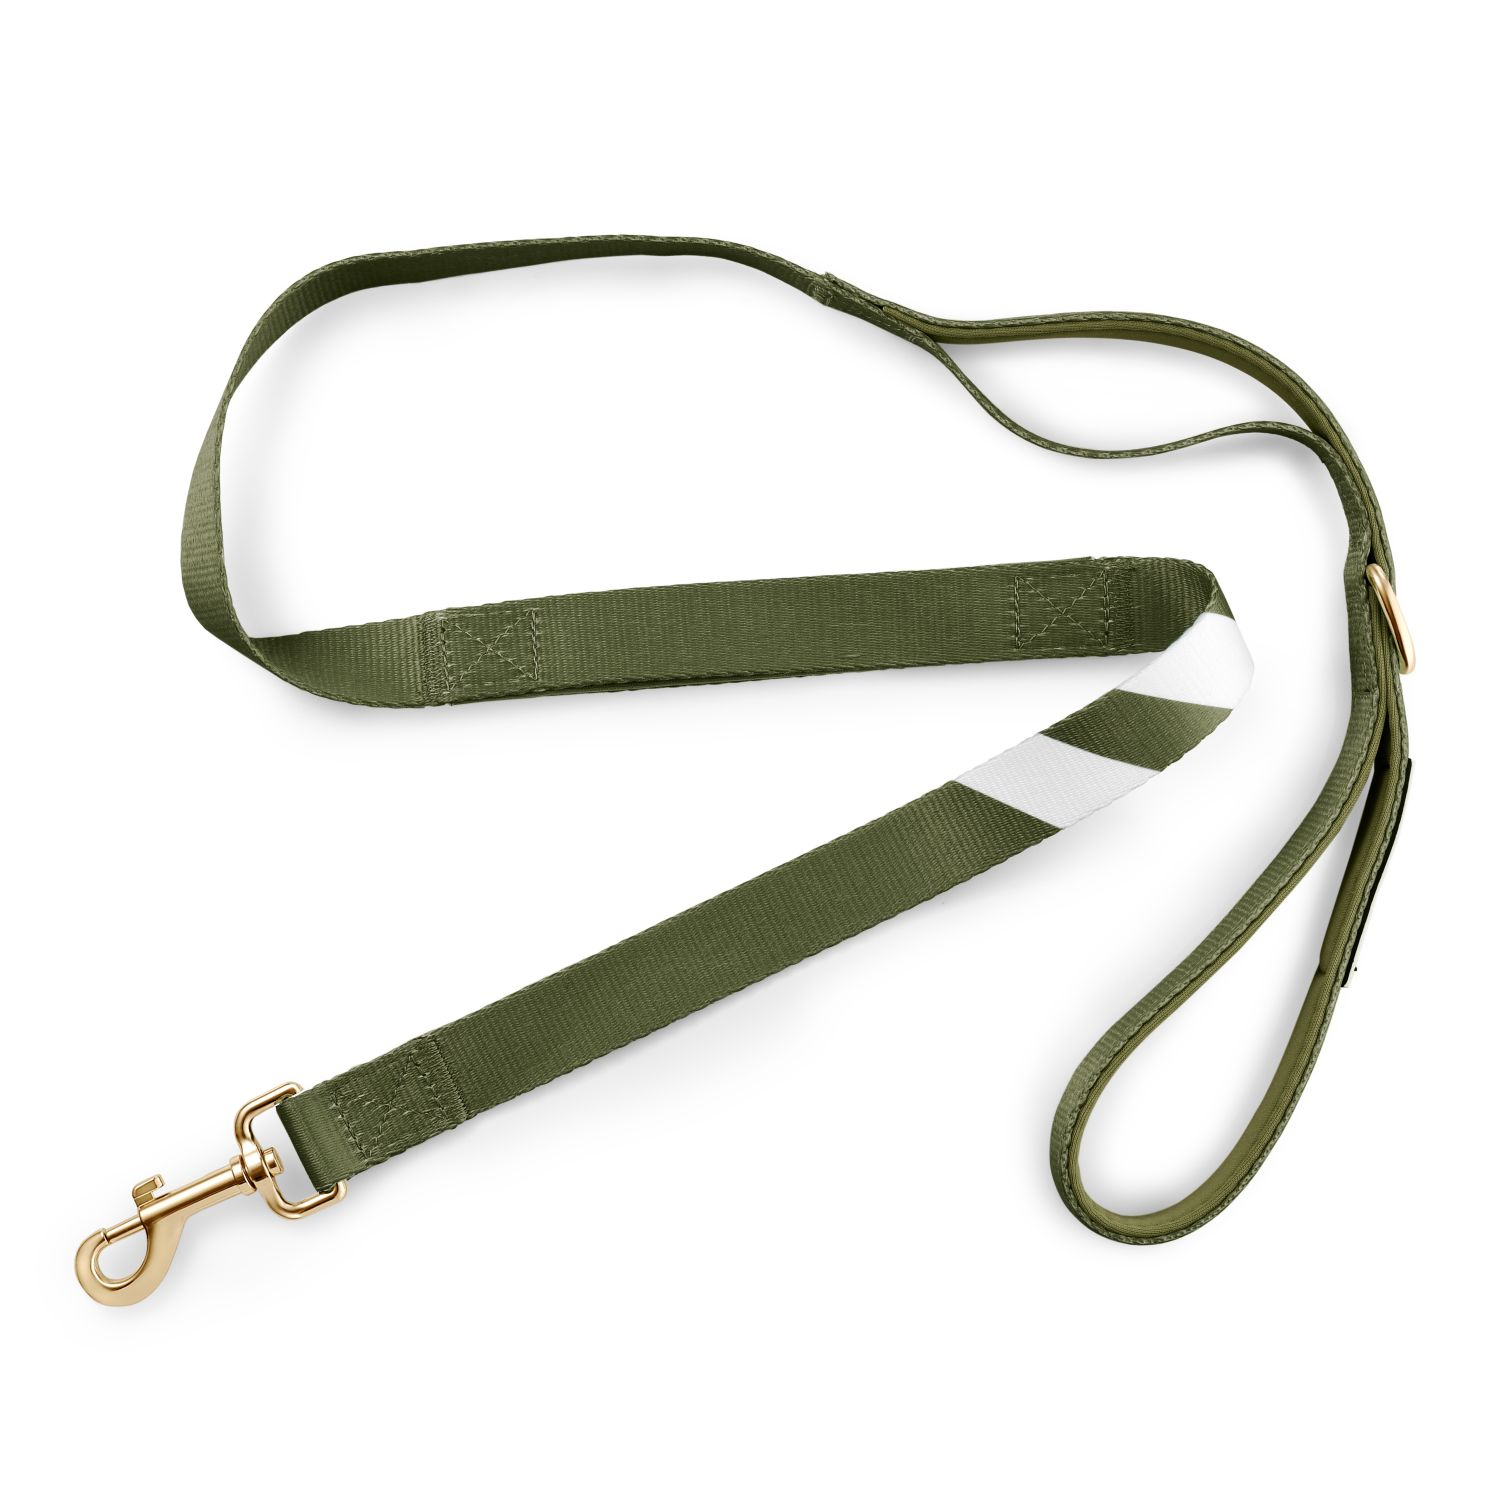 Awesome Olive - City Walker Leash leash bestlifeleashes